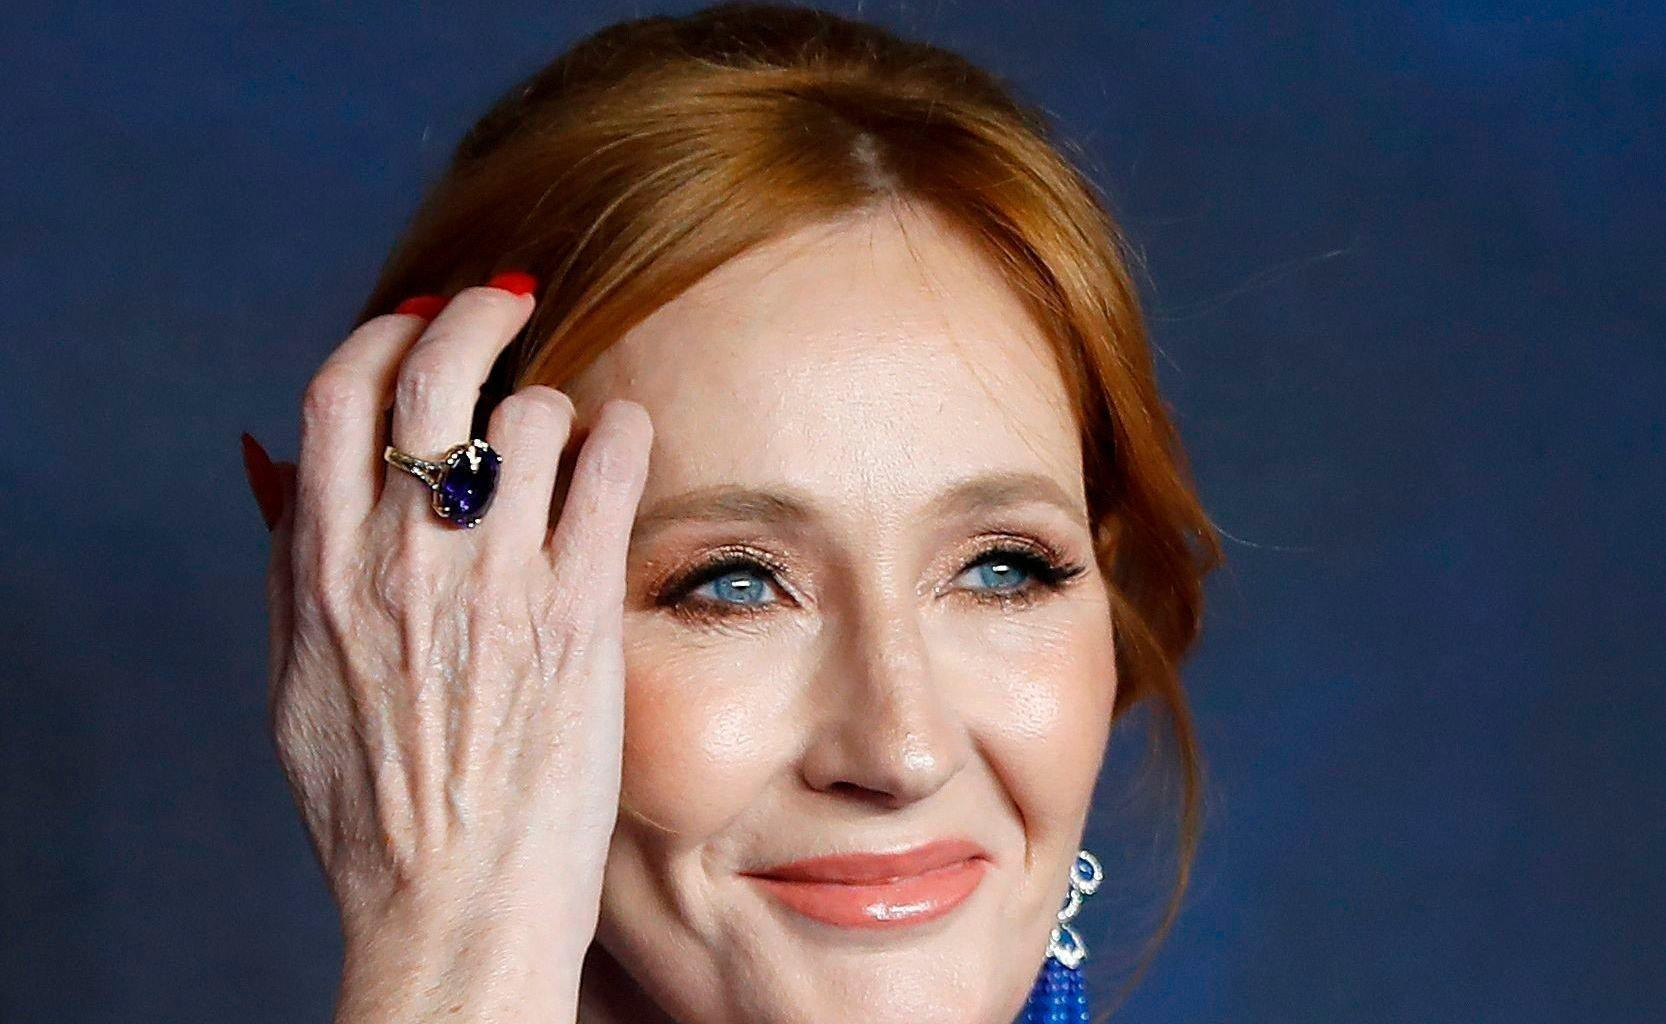 J.K. Rowling Breaks Fans' Hearts After Showing Support To A Woman Fired Over Transphobic Comments